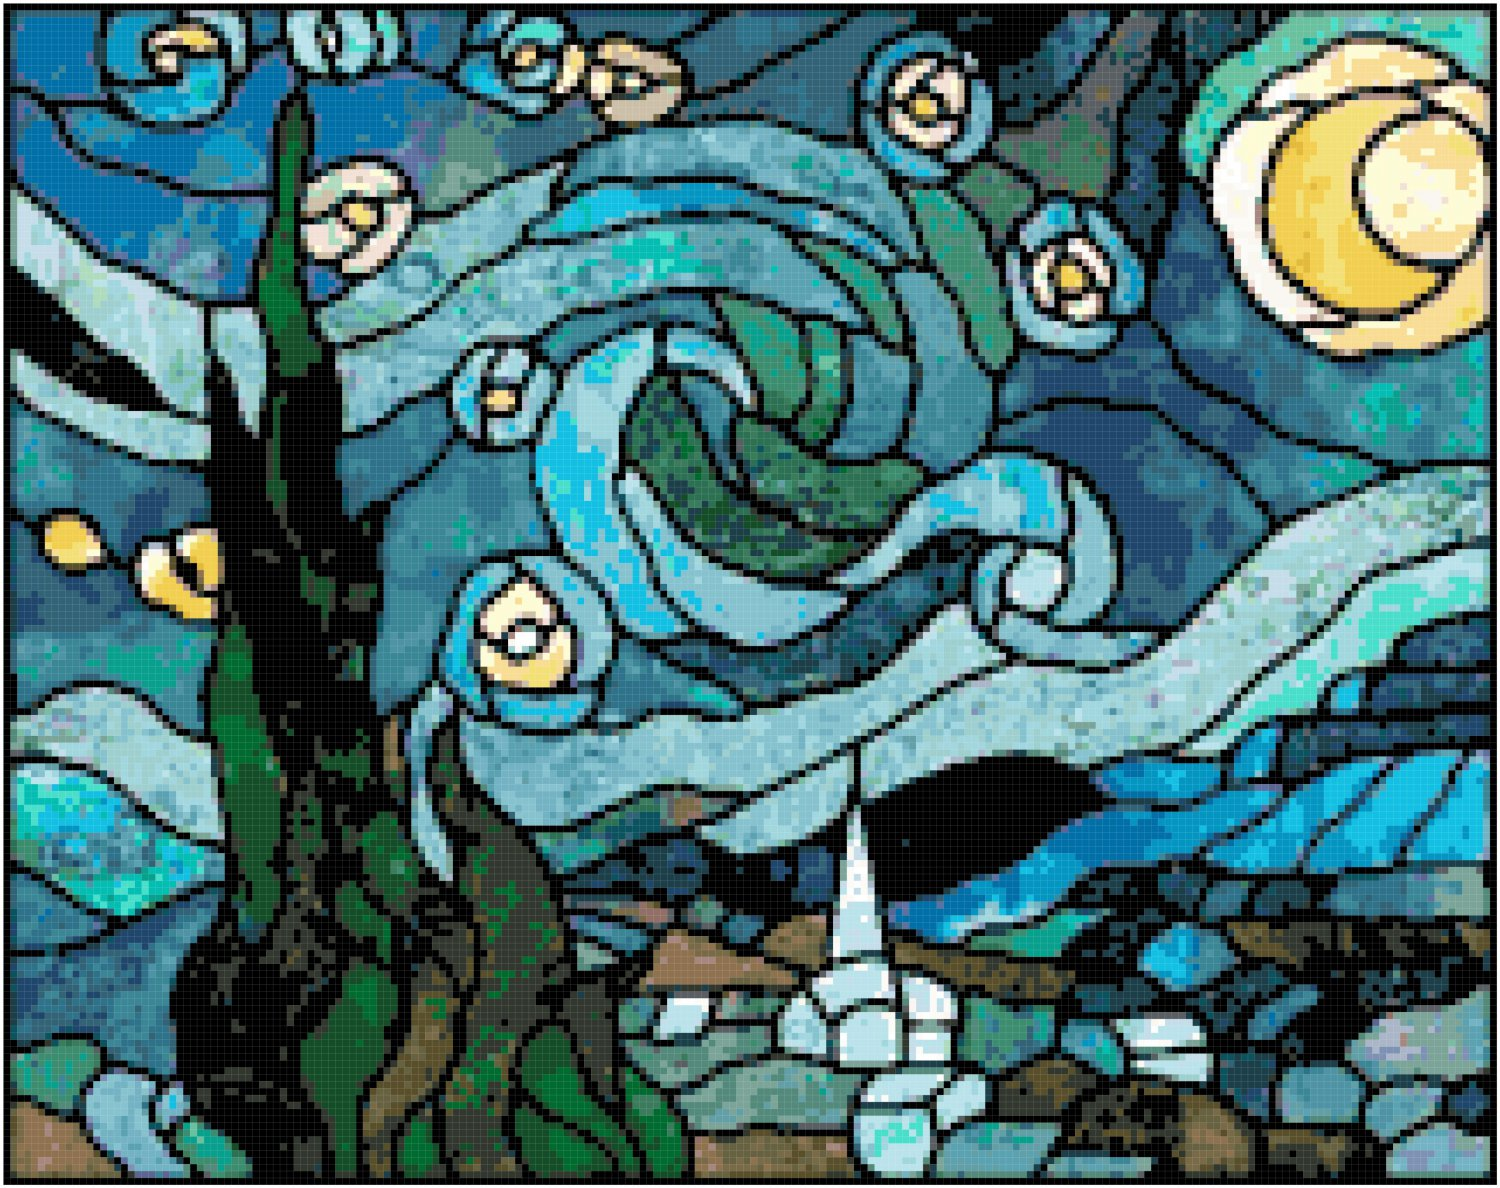 Van Gogh S Starry Night In Stained Glass Cross Stitch